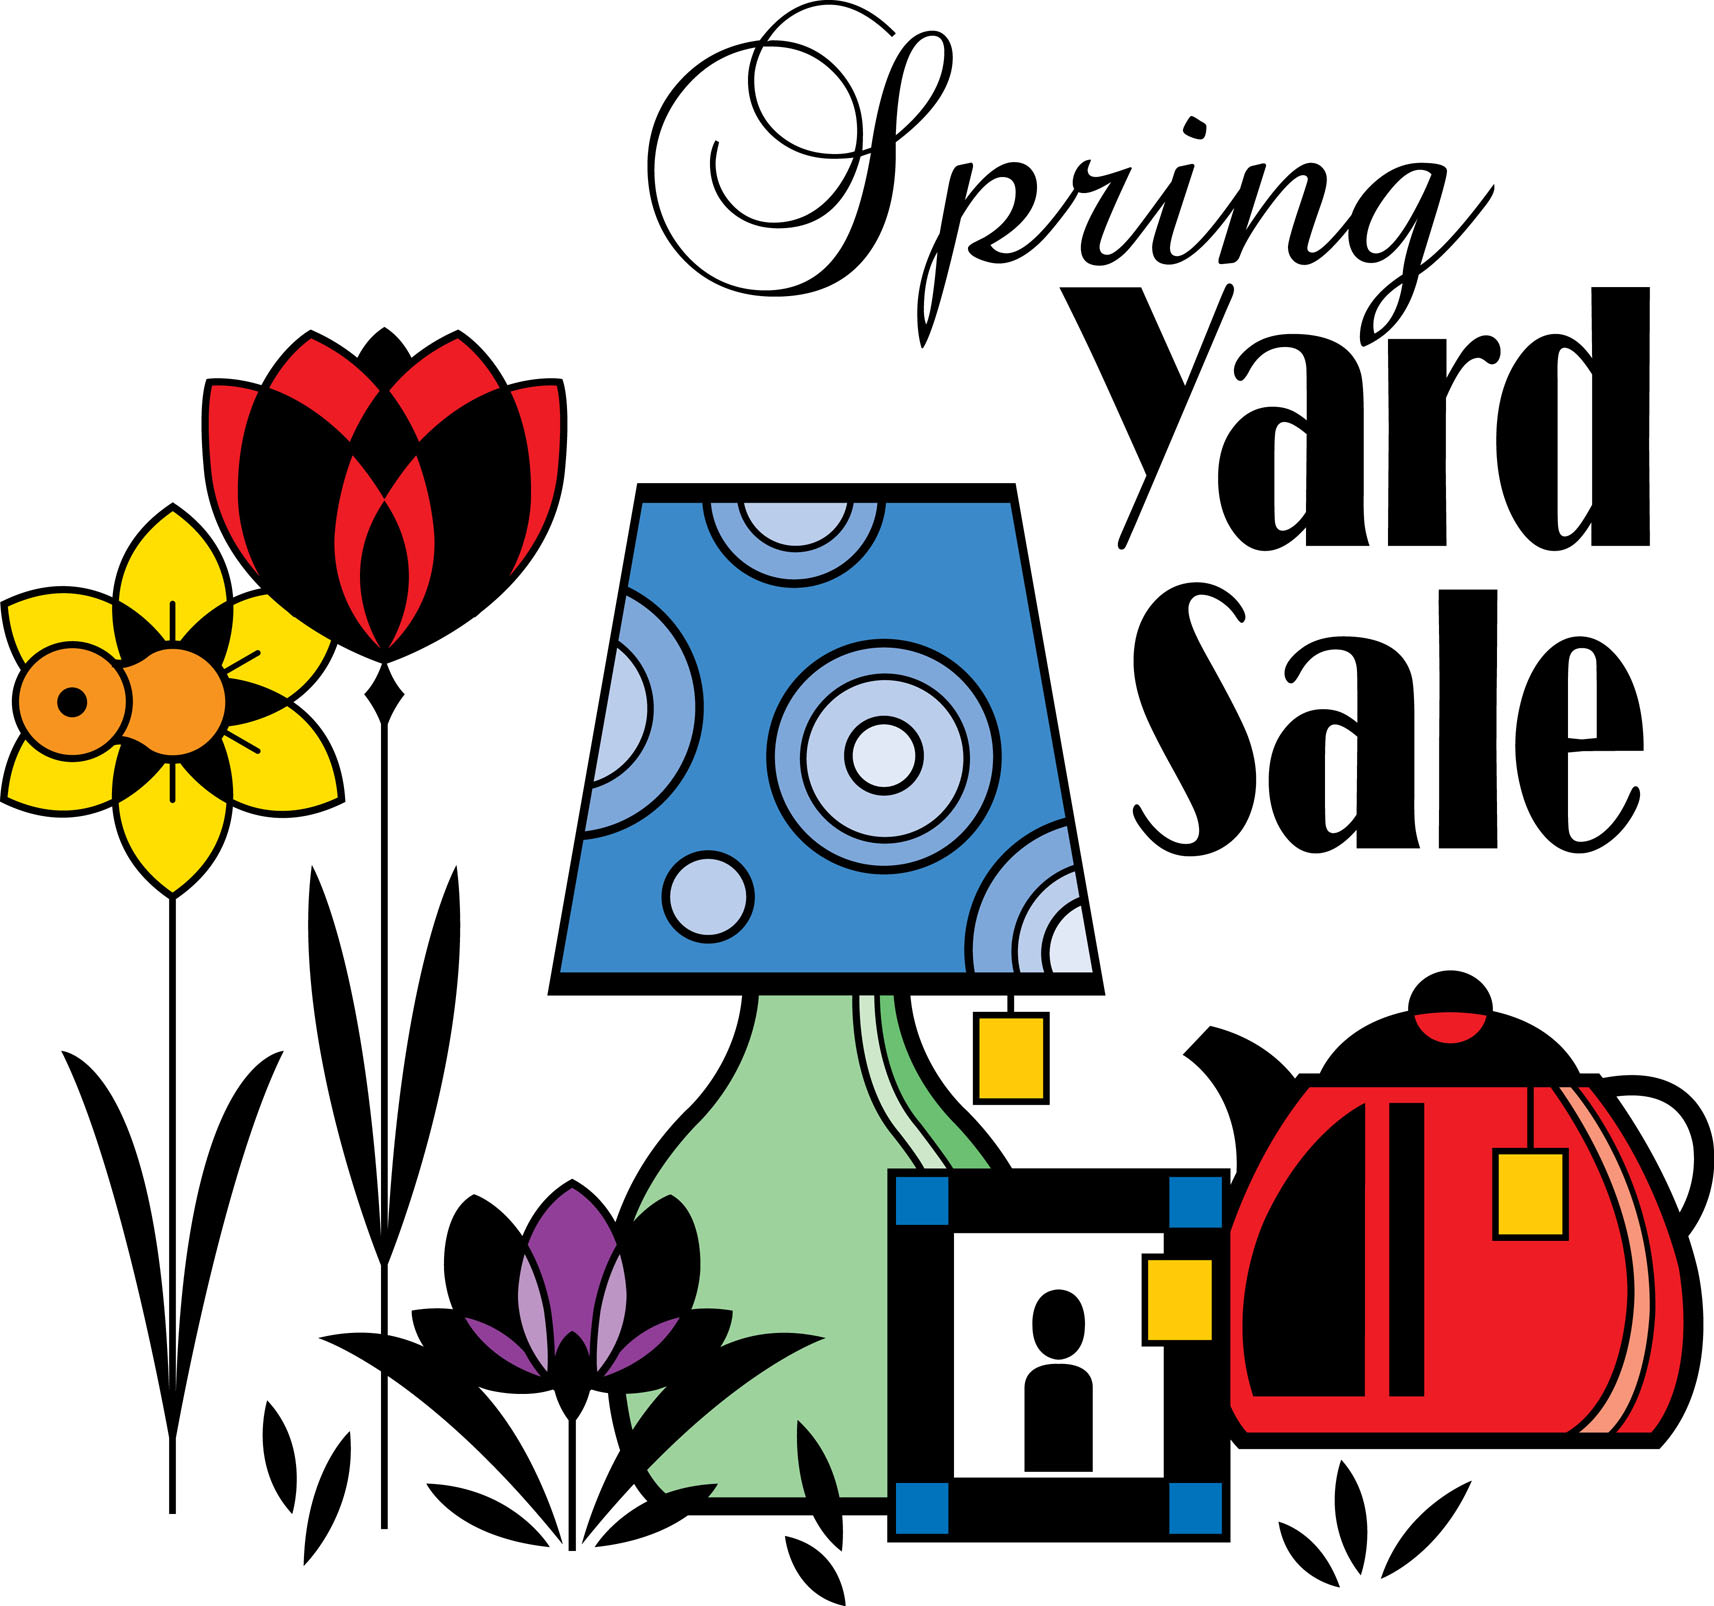 Church yard sale clipart.